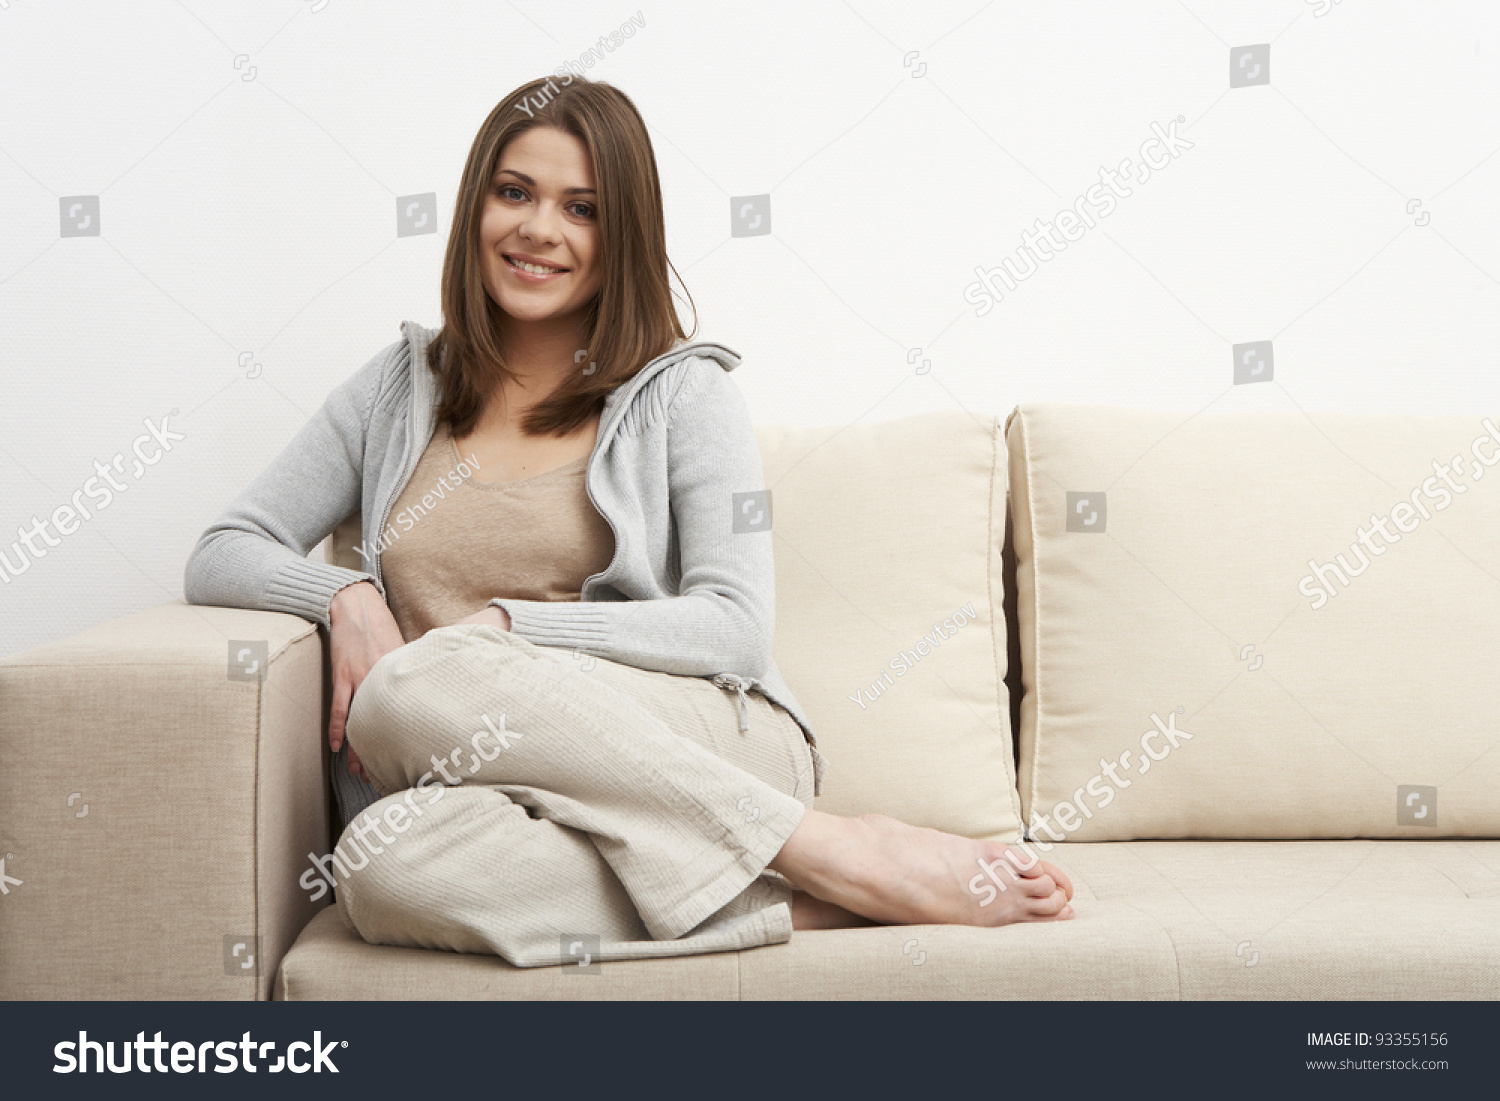 Woman Sitting On Couch Style Sex Pictures